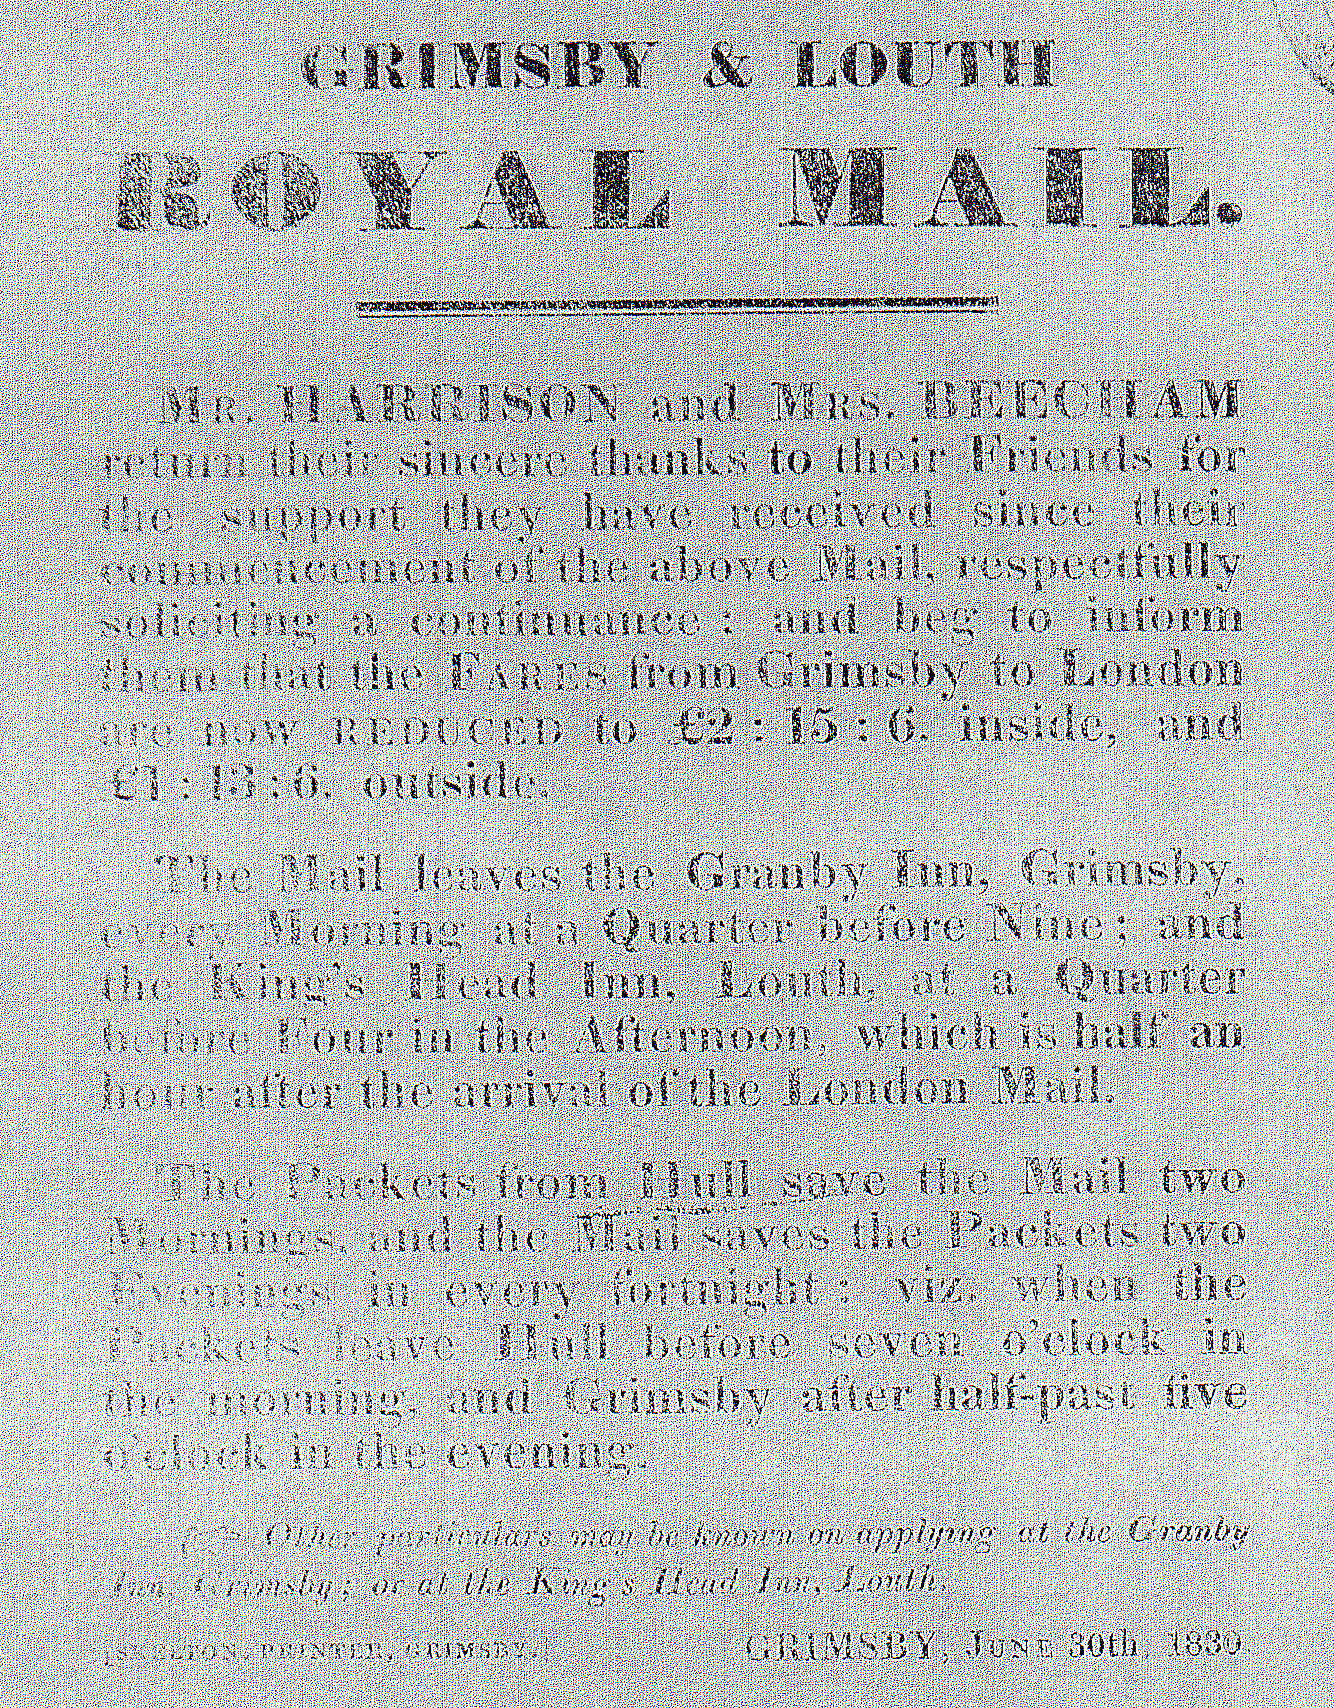 1830 Royal Mail.jpg